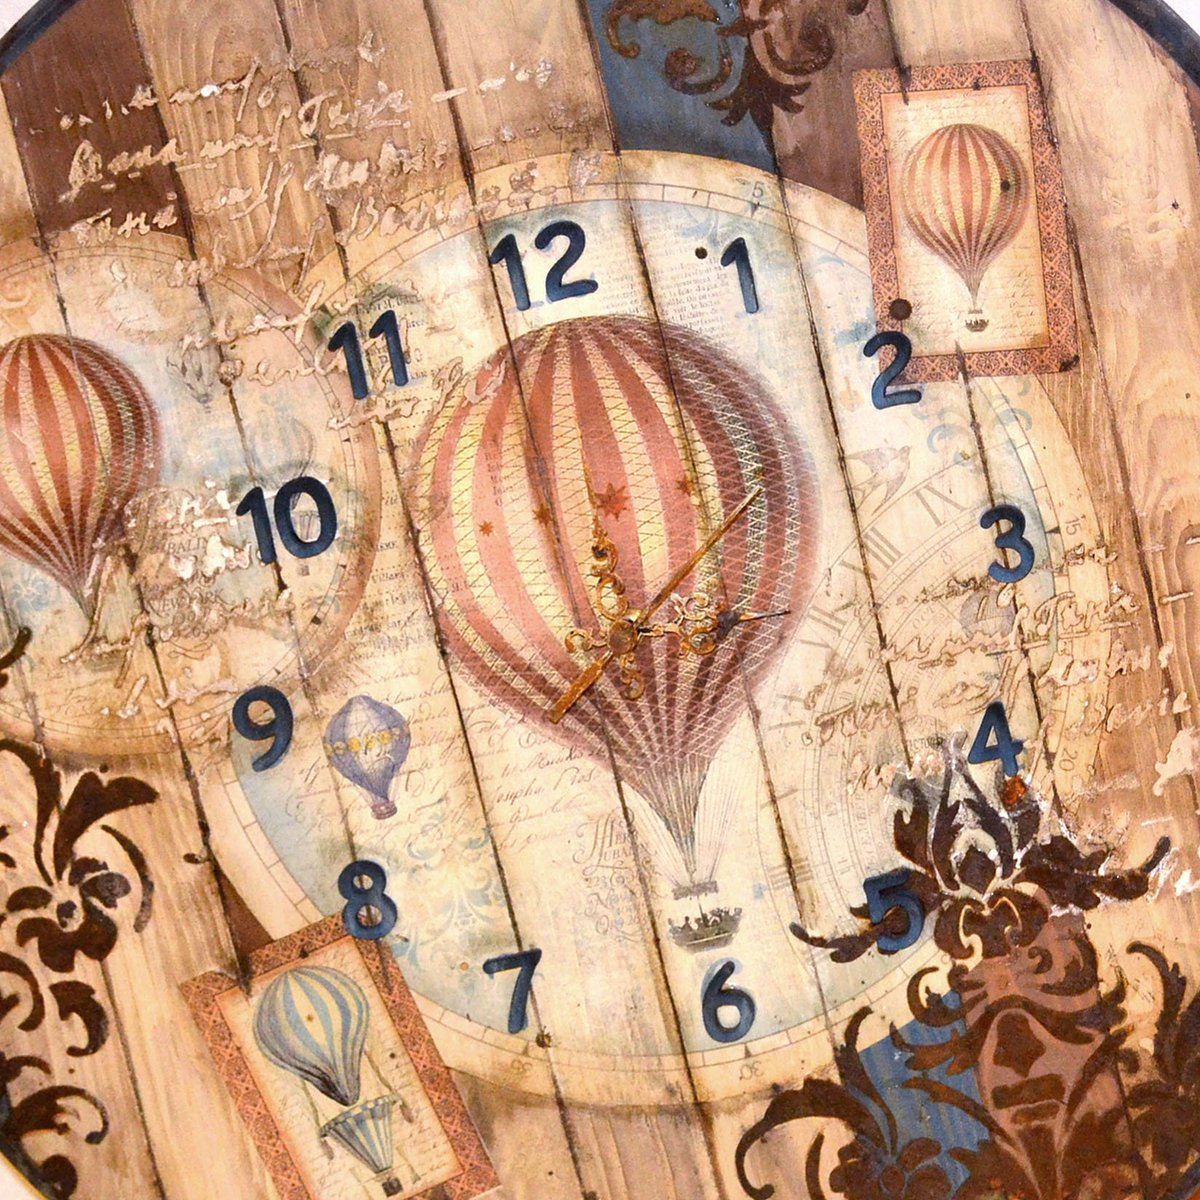 The original creation by @Antonis Tzanidakis Hot air baloon #decoupage #stencil #rusteffect #clock  get inspired